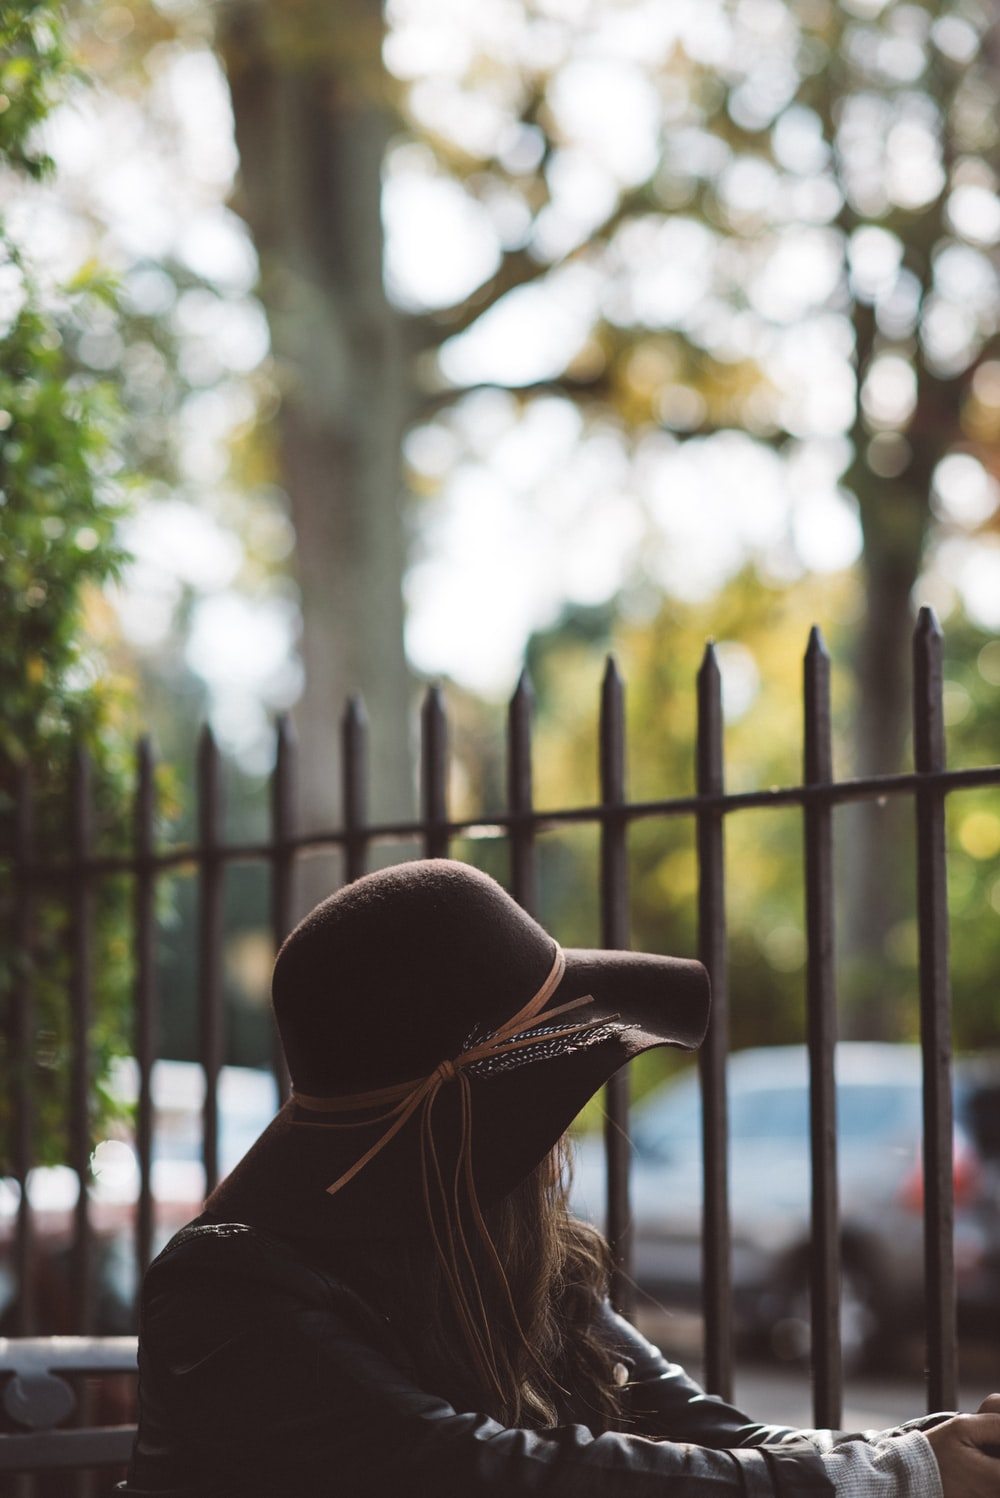 woman looking through the fence during daytime